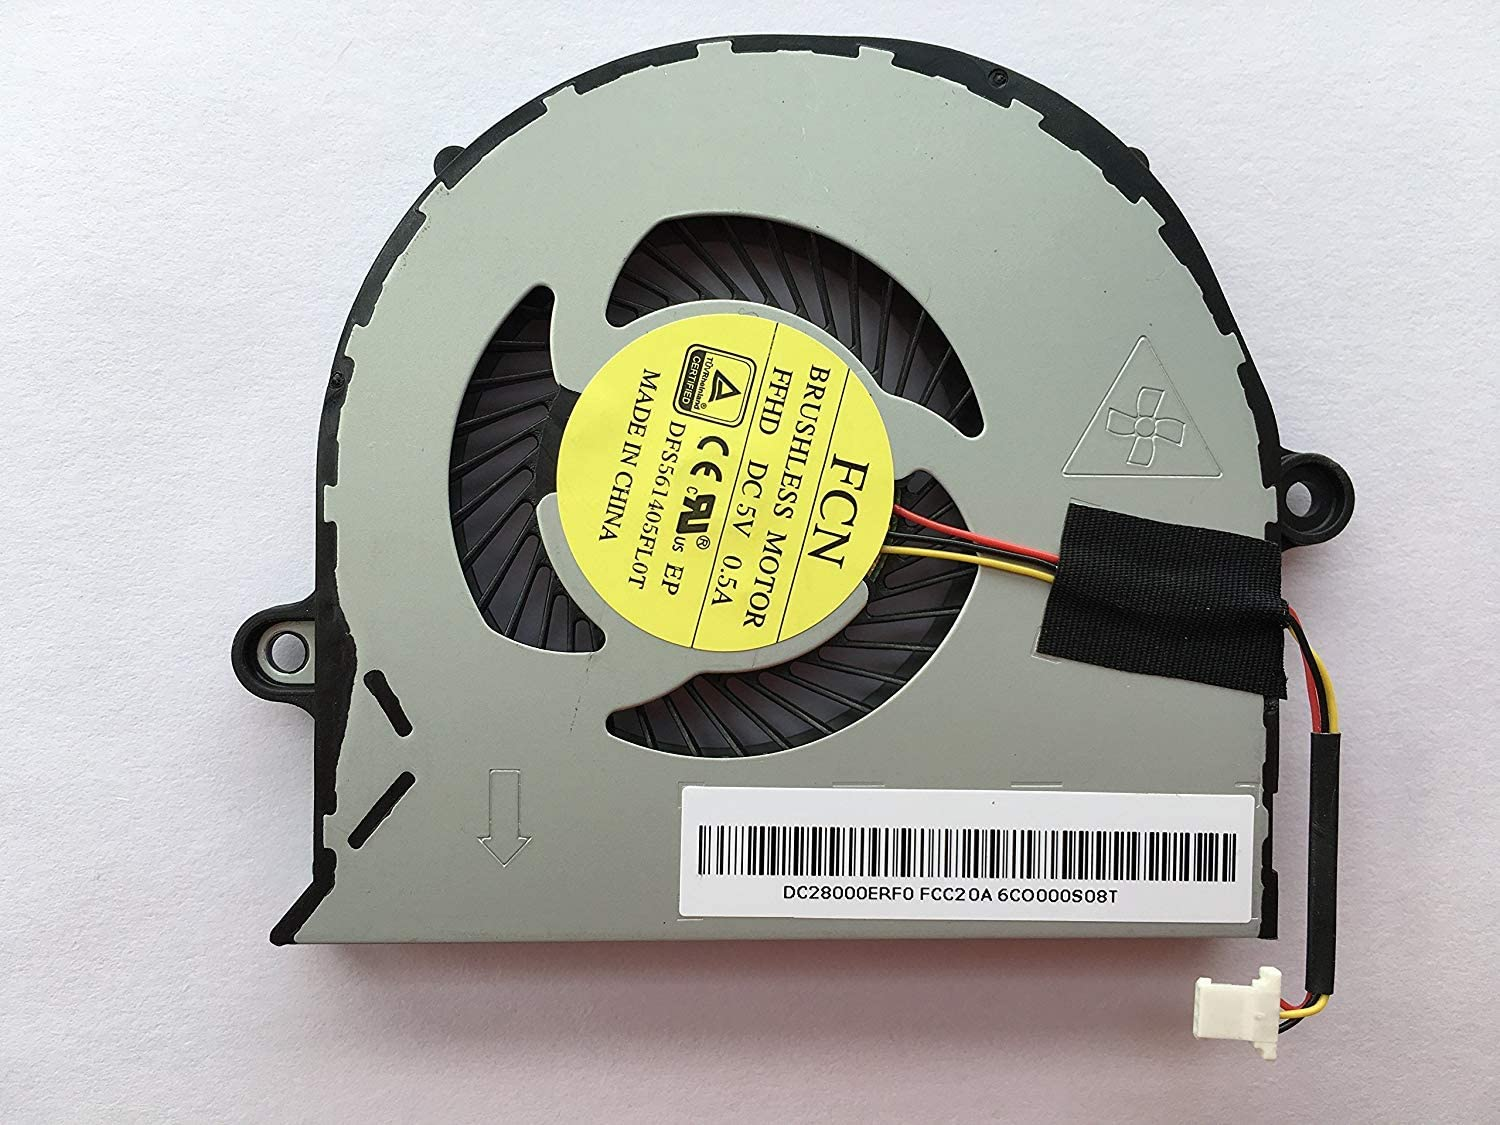 HK-Part Replacement Fan for Acer Aspire E5-571G E5-571 E5-531 E5-551 E5-551G E5-511 E5-511G E5-511P E5-521 E5-521G V3-572 V3-572G CPU Cooling Fan 3-Pin 3-Wire